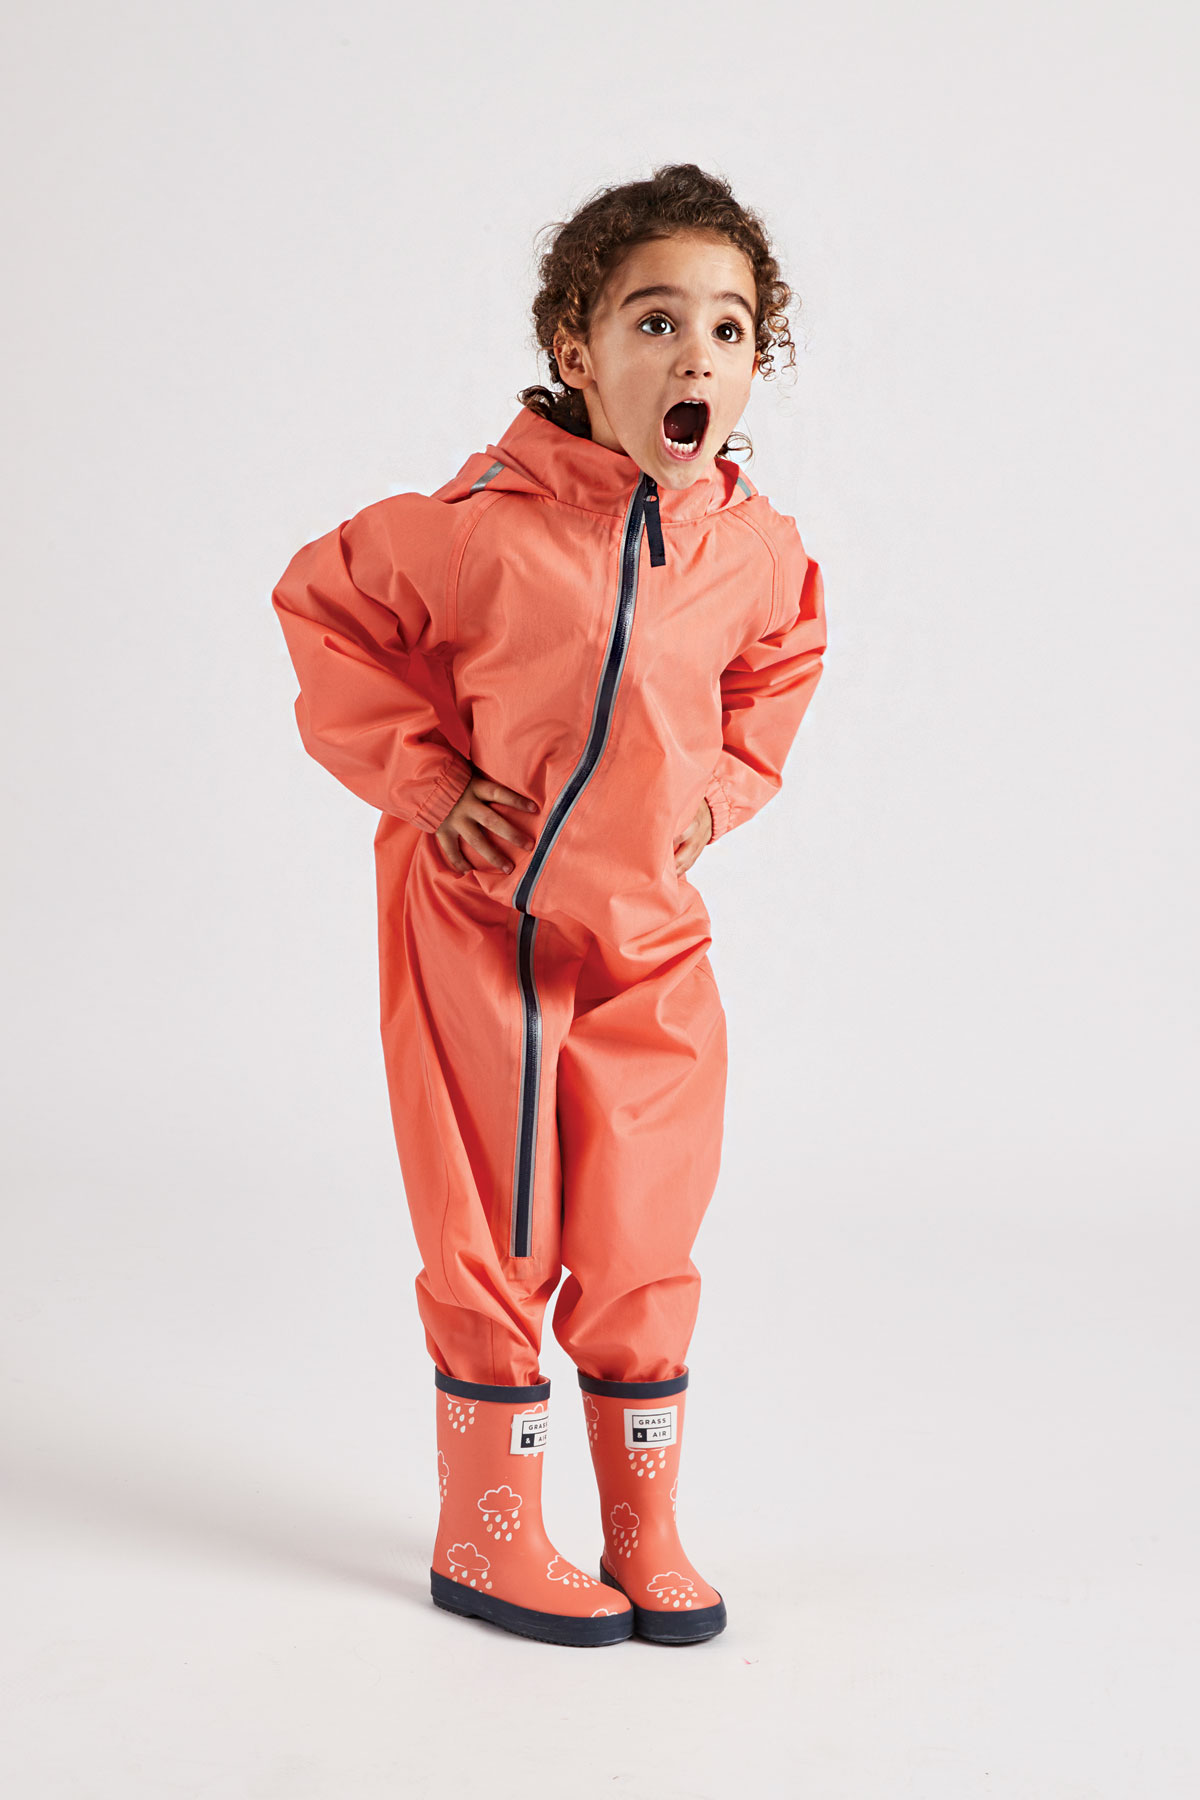 coral puddle suit lifestyle front view (1200x1800)